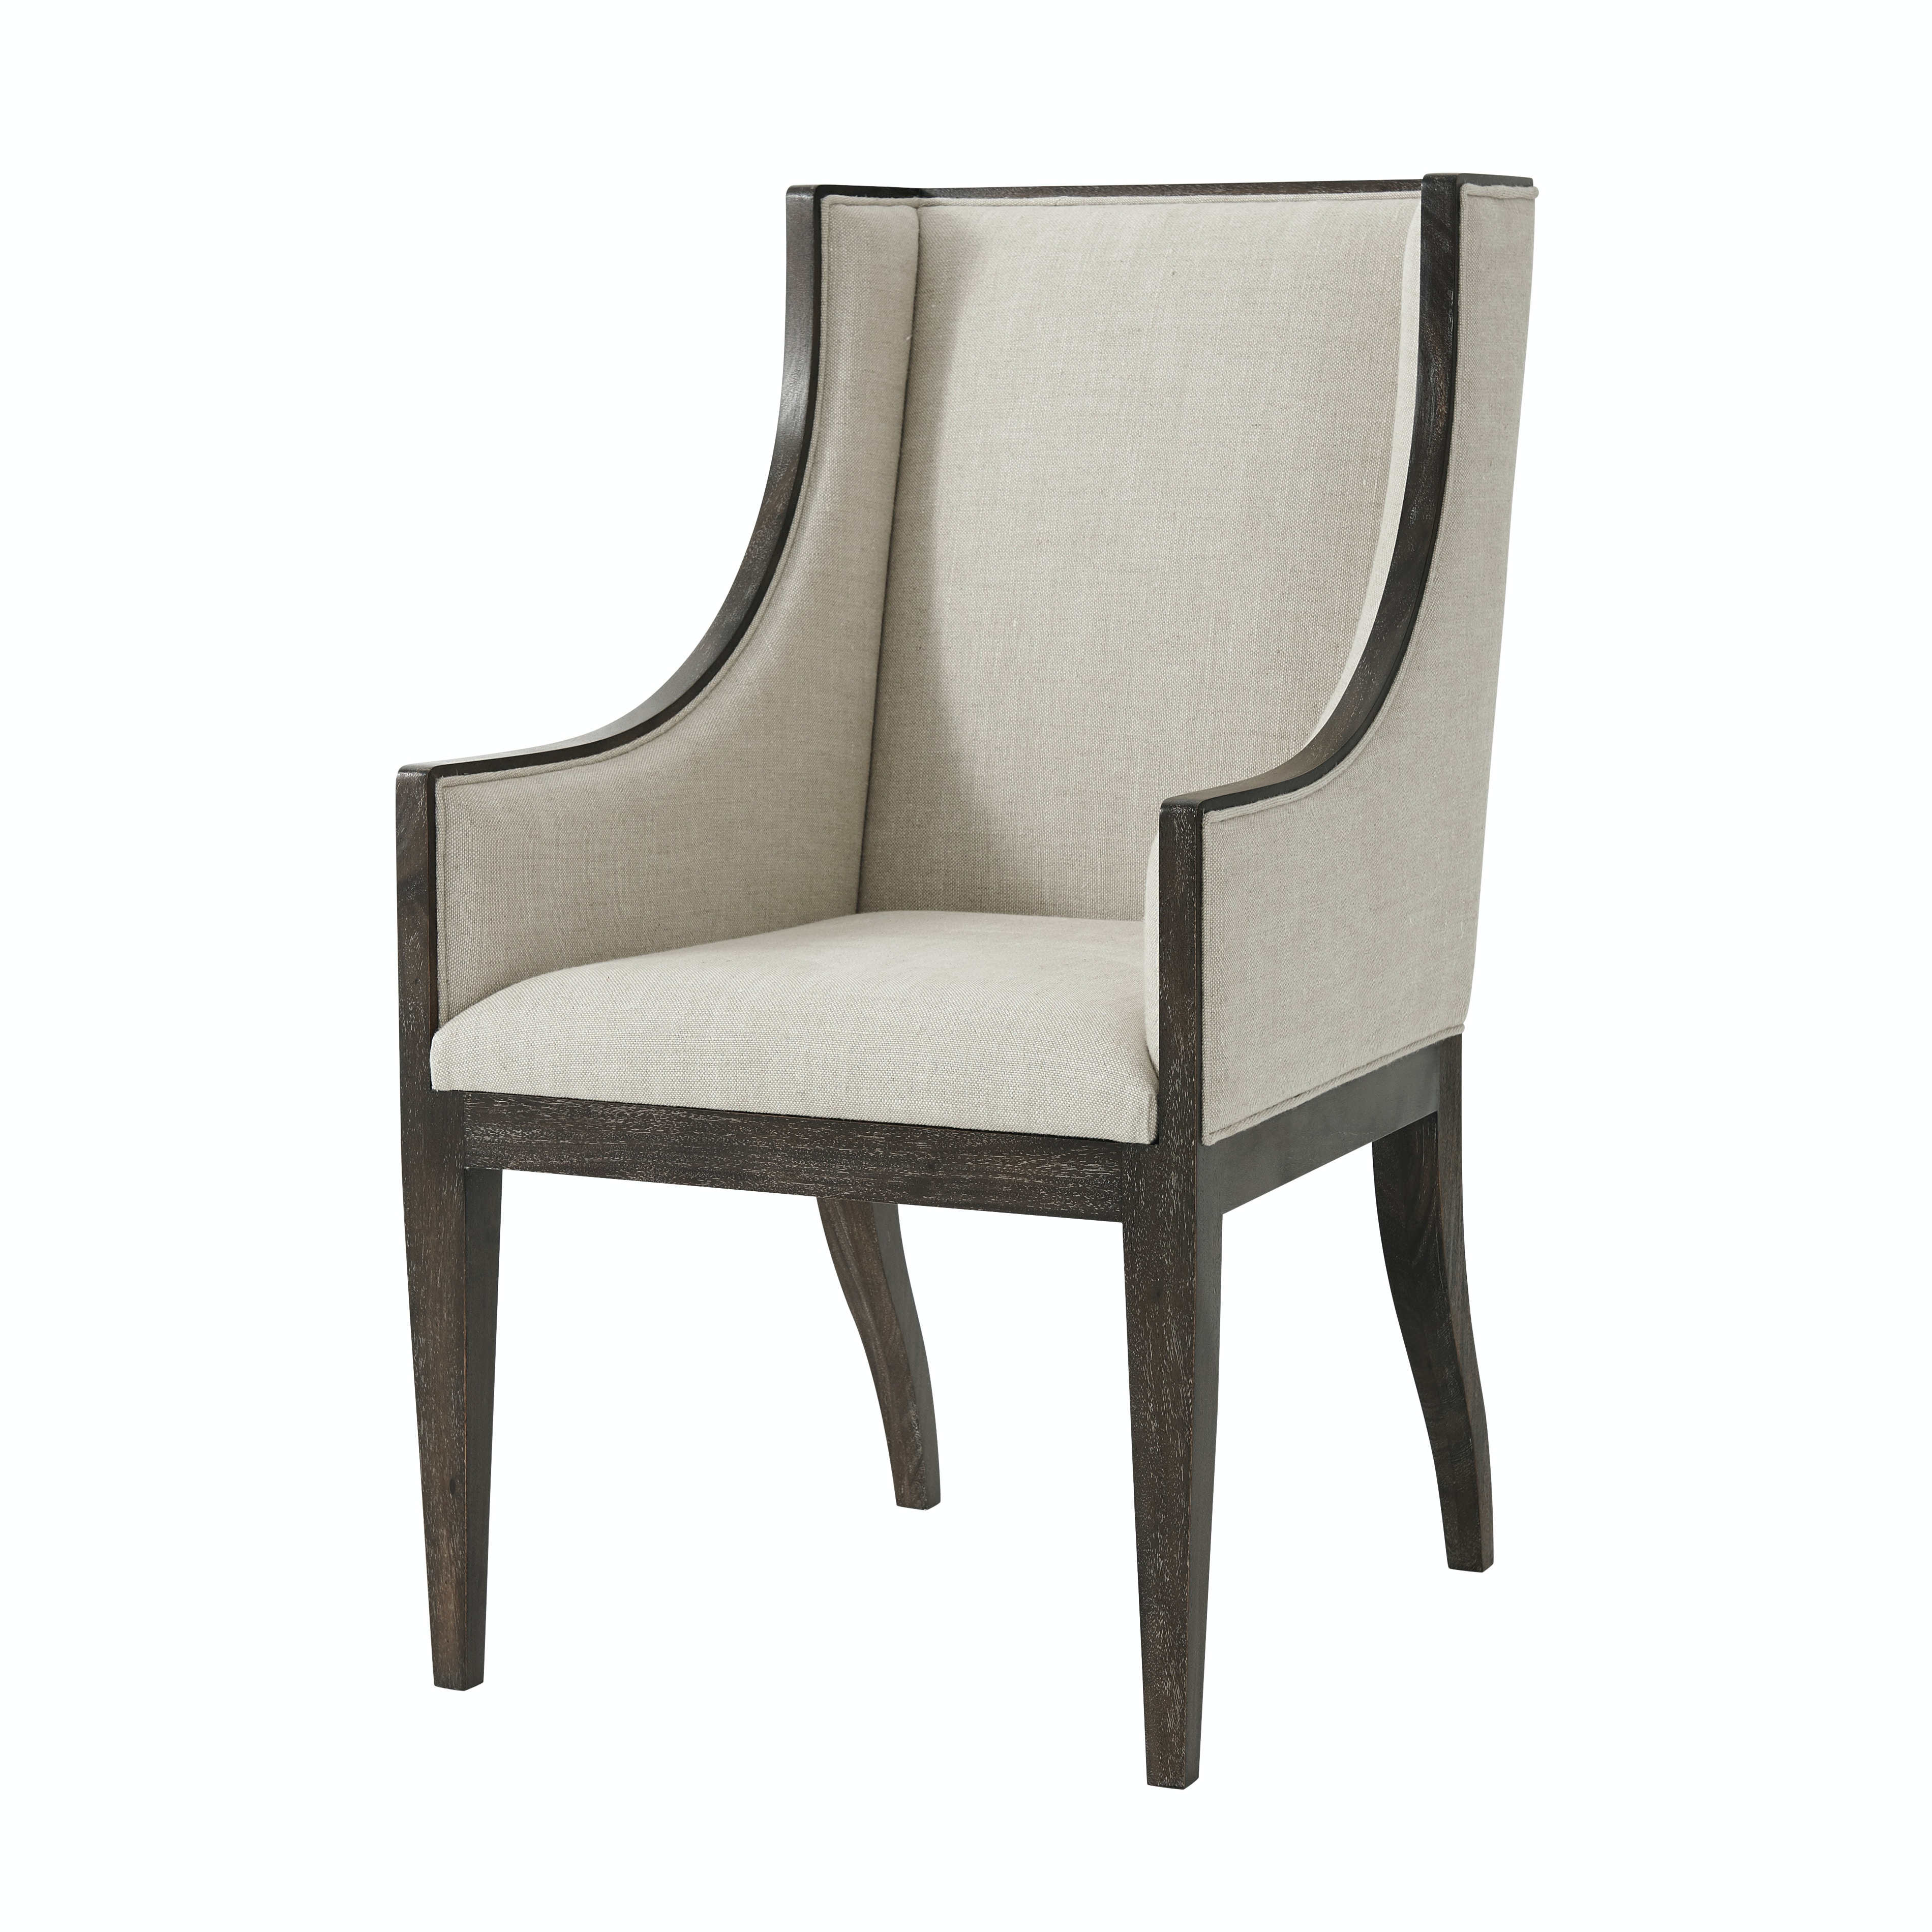 Theodore Alexander Furniture Englewood Armchair 4100 927.1AQG